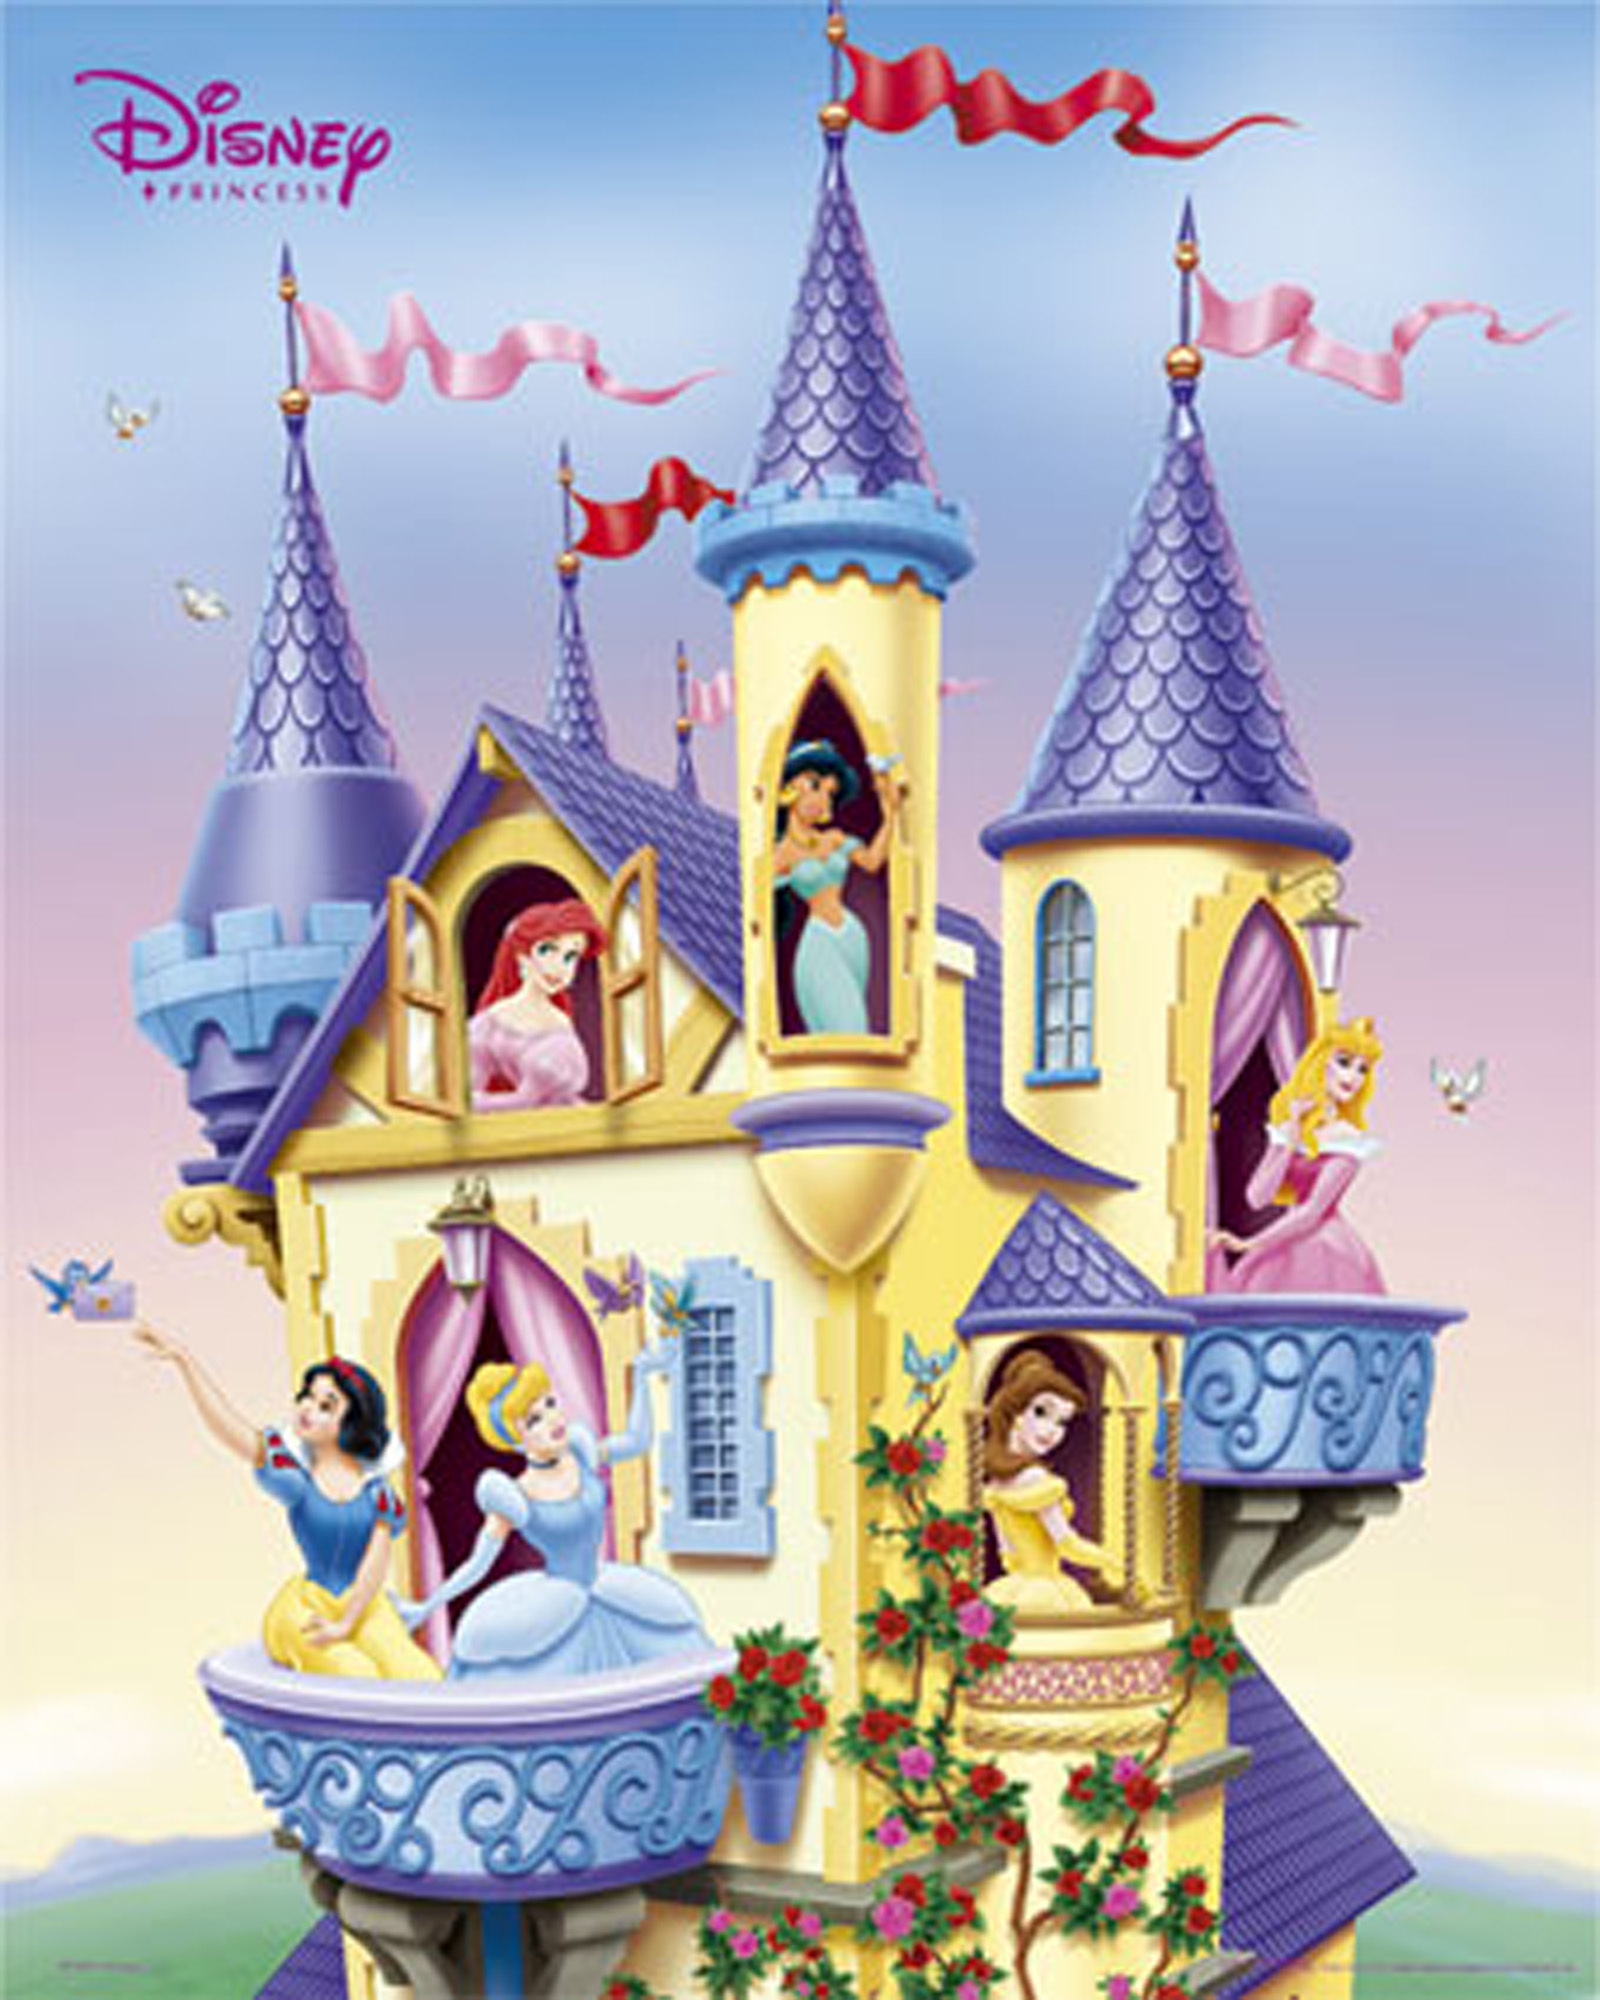 Disney Princess Princesses in Castle